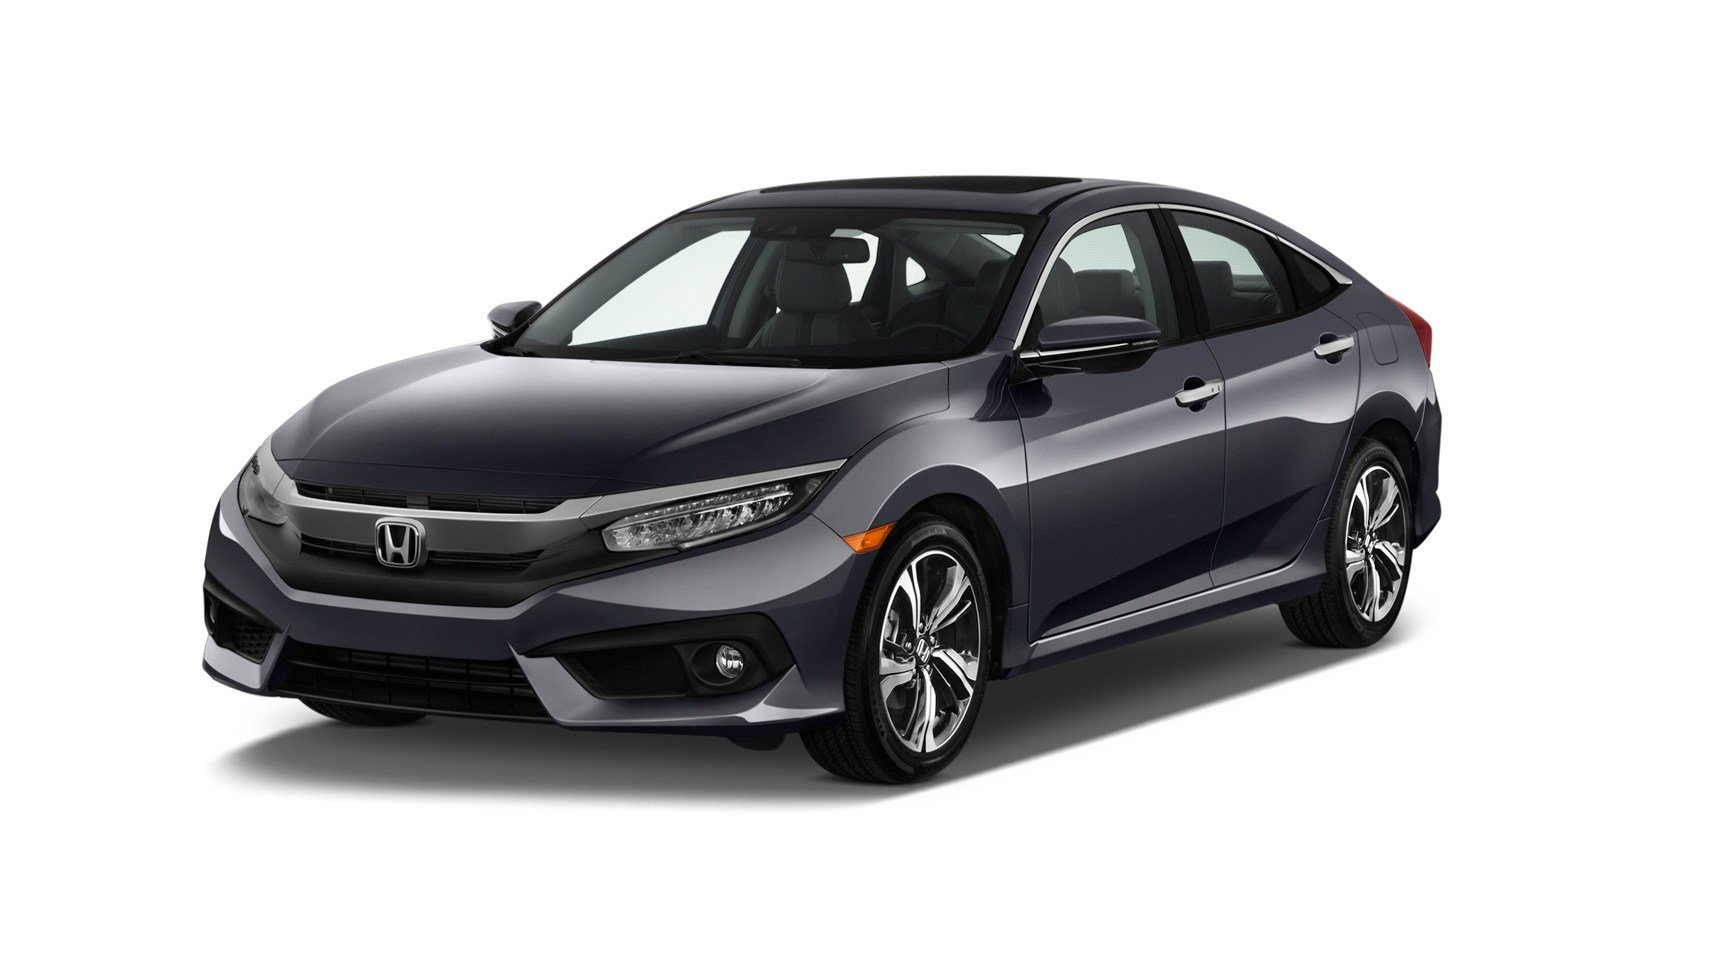 New Honda Civic 2019 1 6L Dx In Uae New Car Prices Specs On This Month